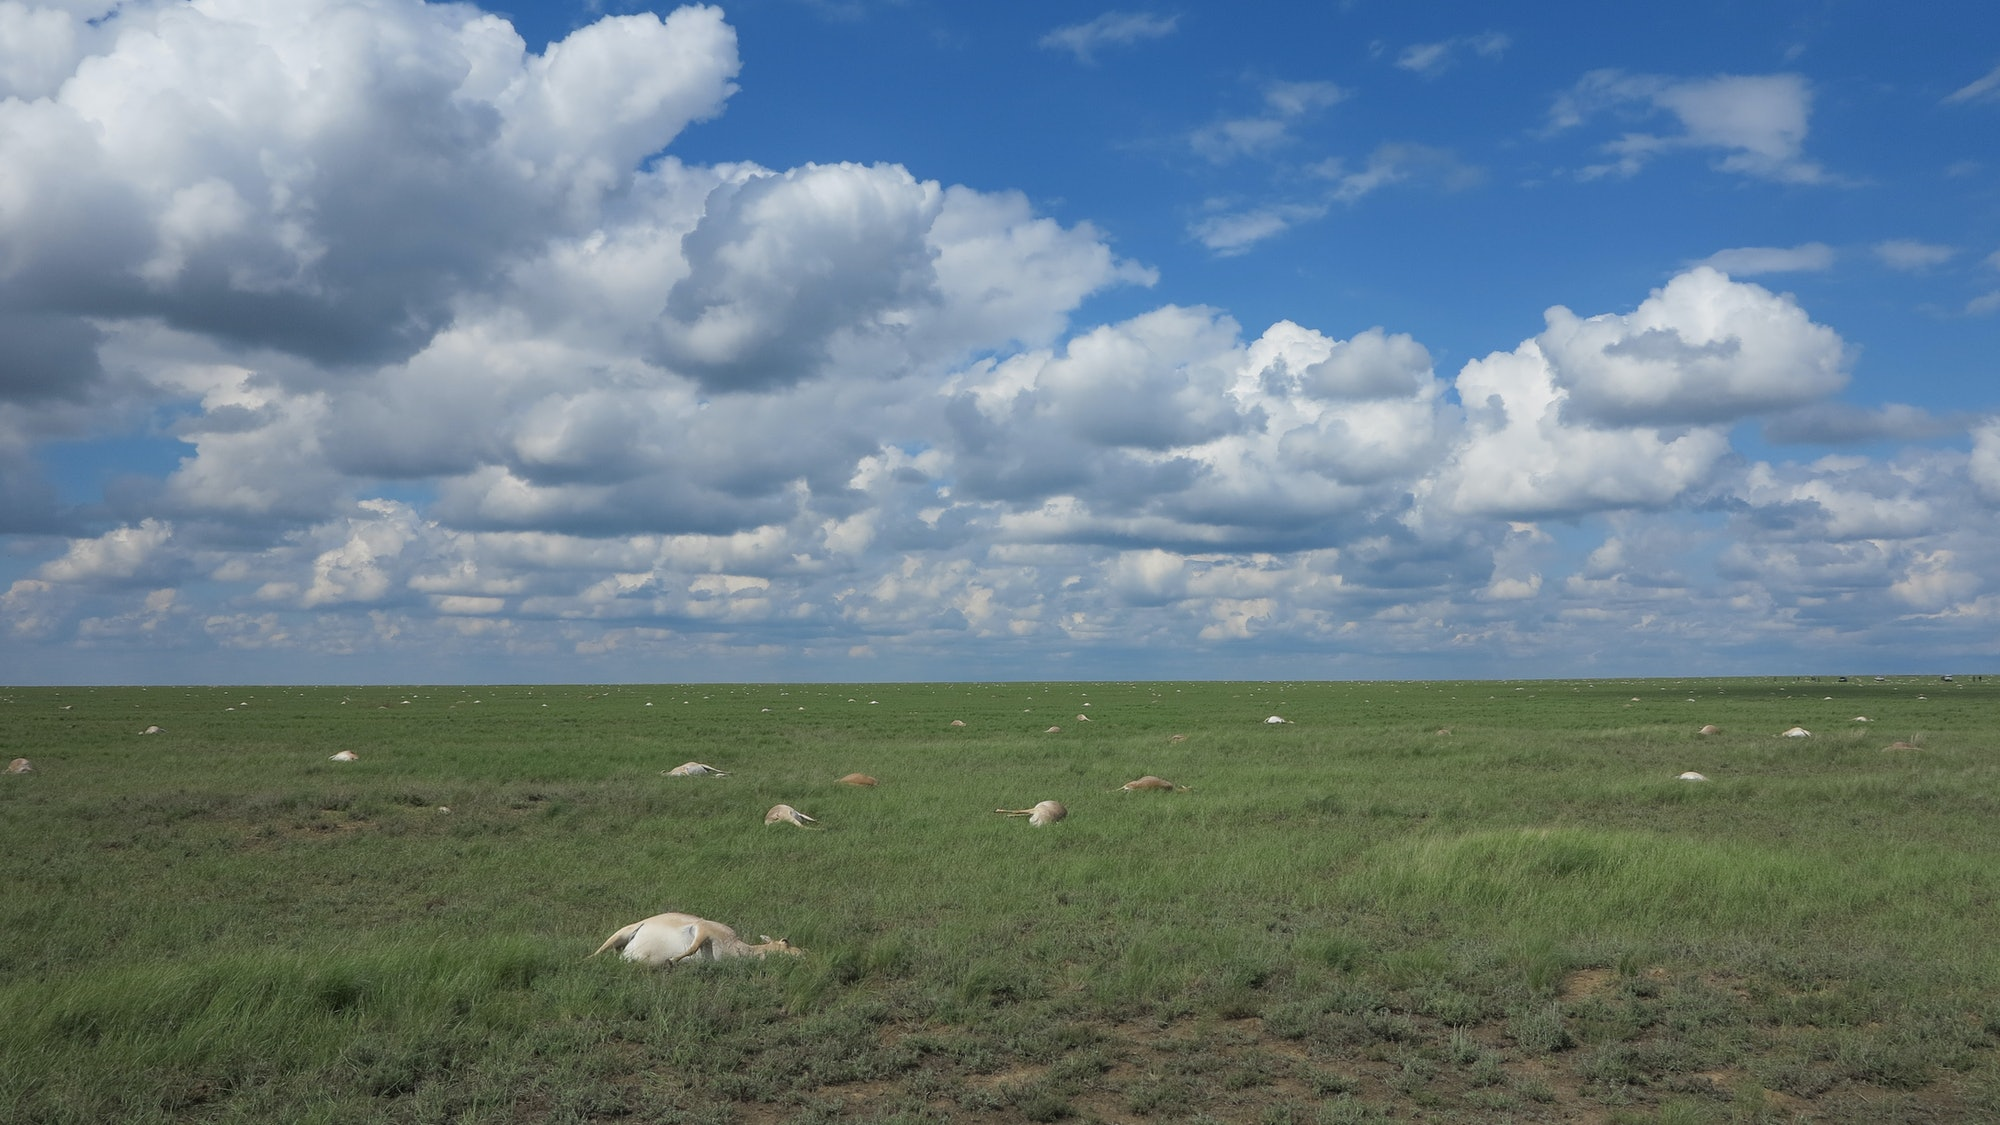 Over three weeks in 2015, over 60 percent of the Earth's saiga antelopes died from a bacterial infection.